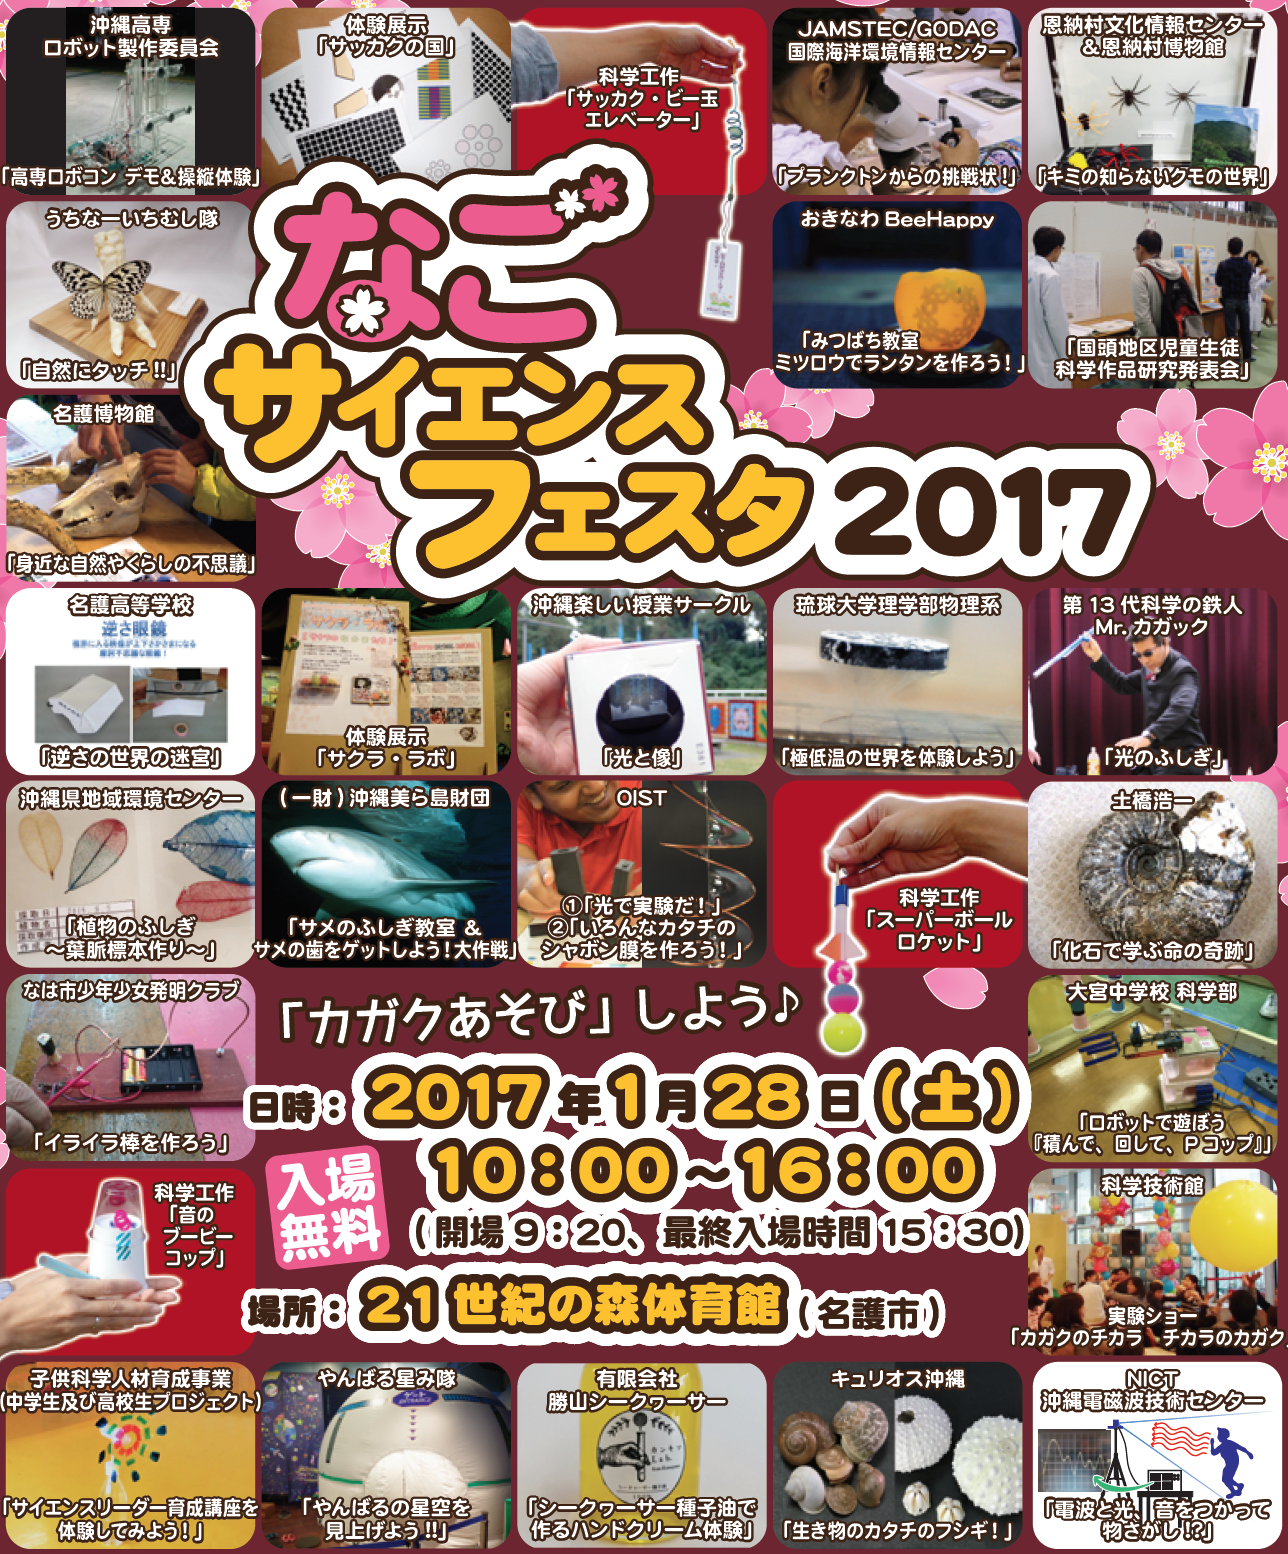 Nago Science Festa